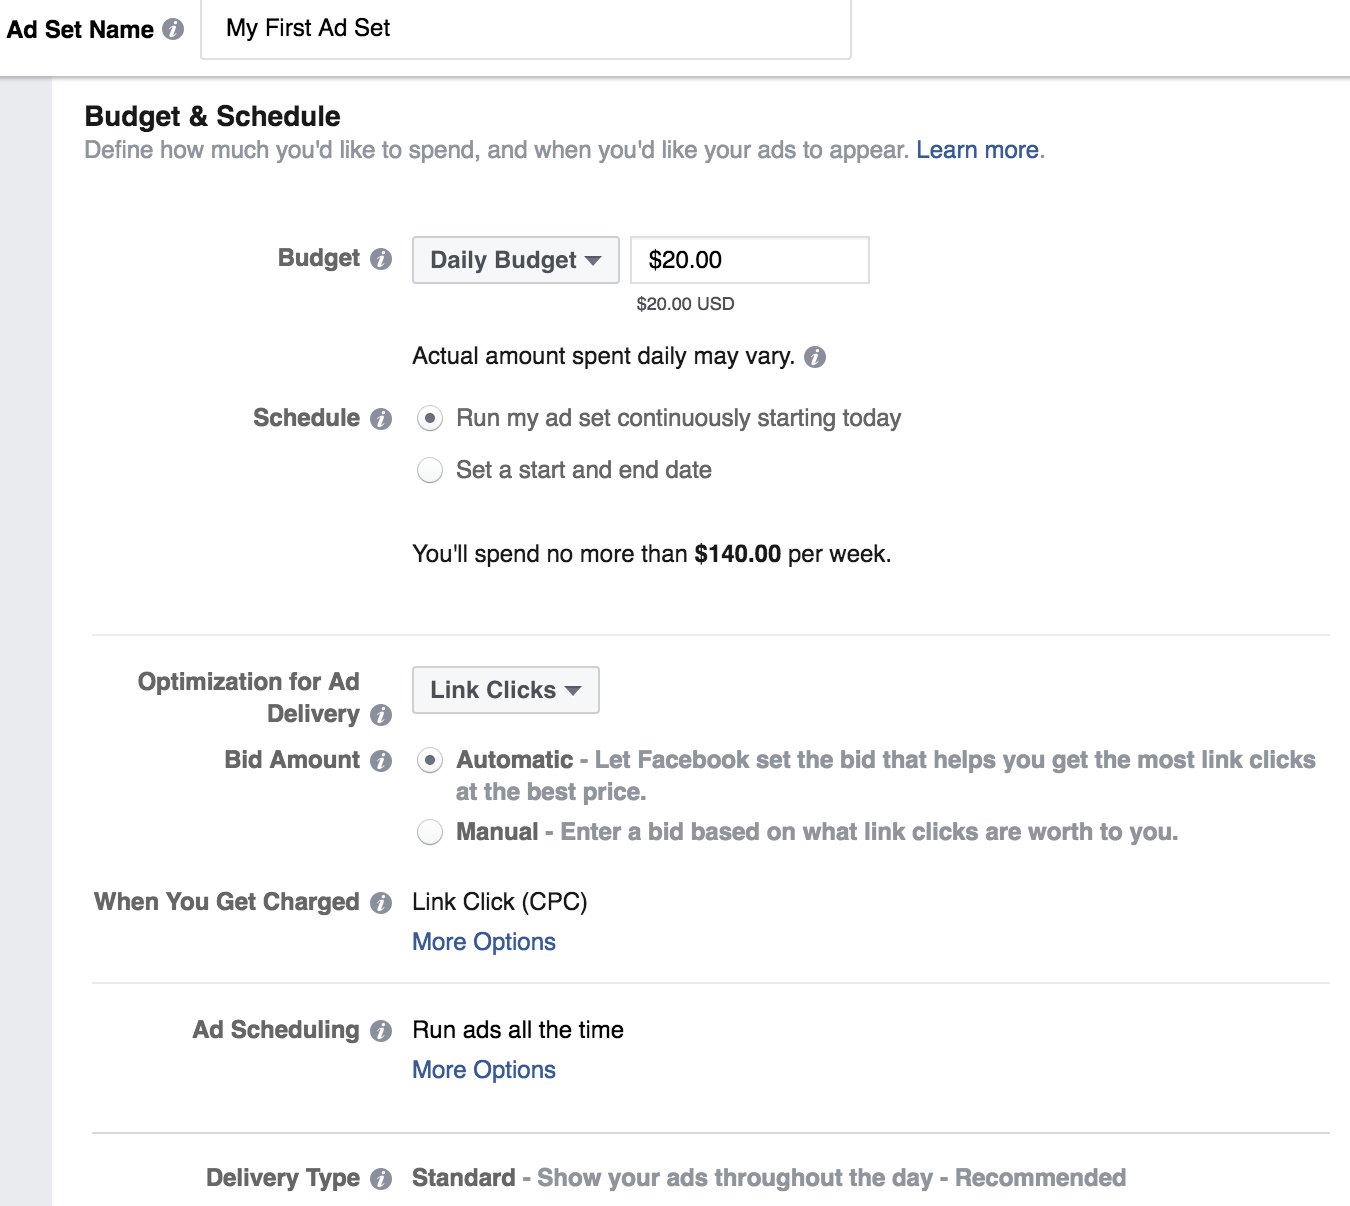 Budget and Schedule - Facebook Ad Sets